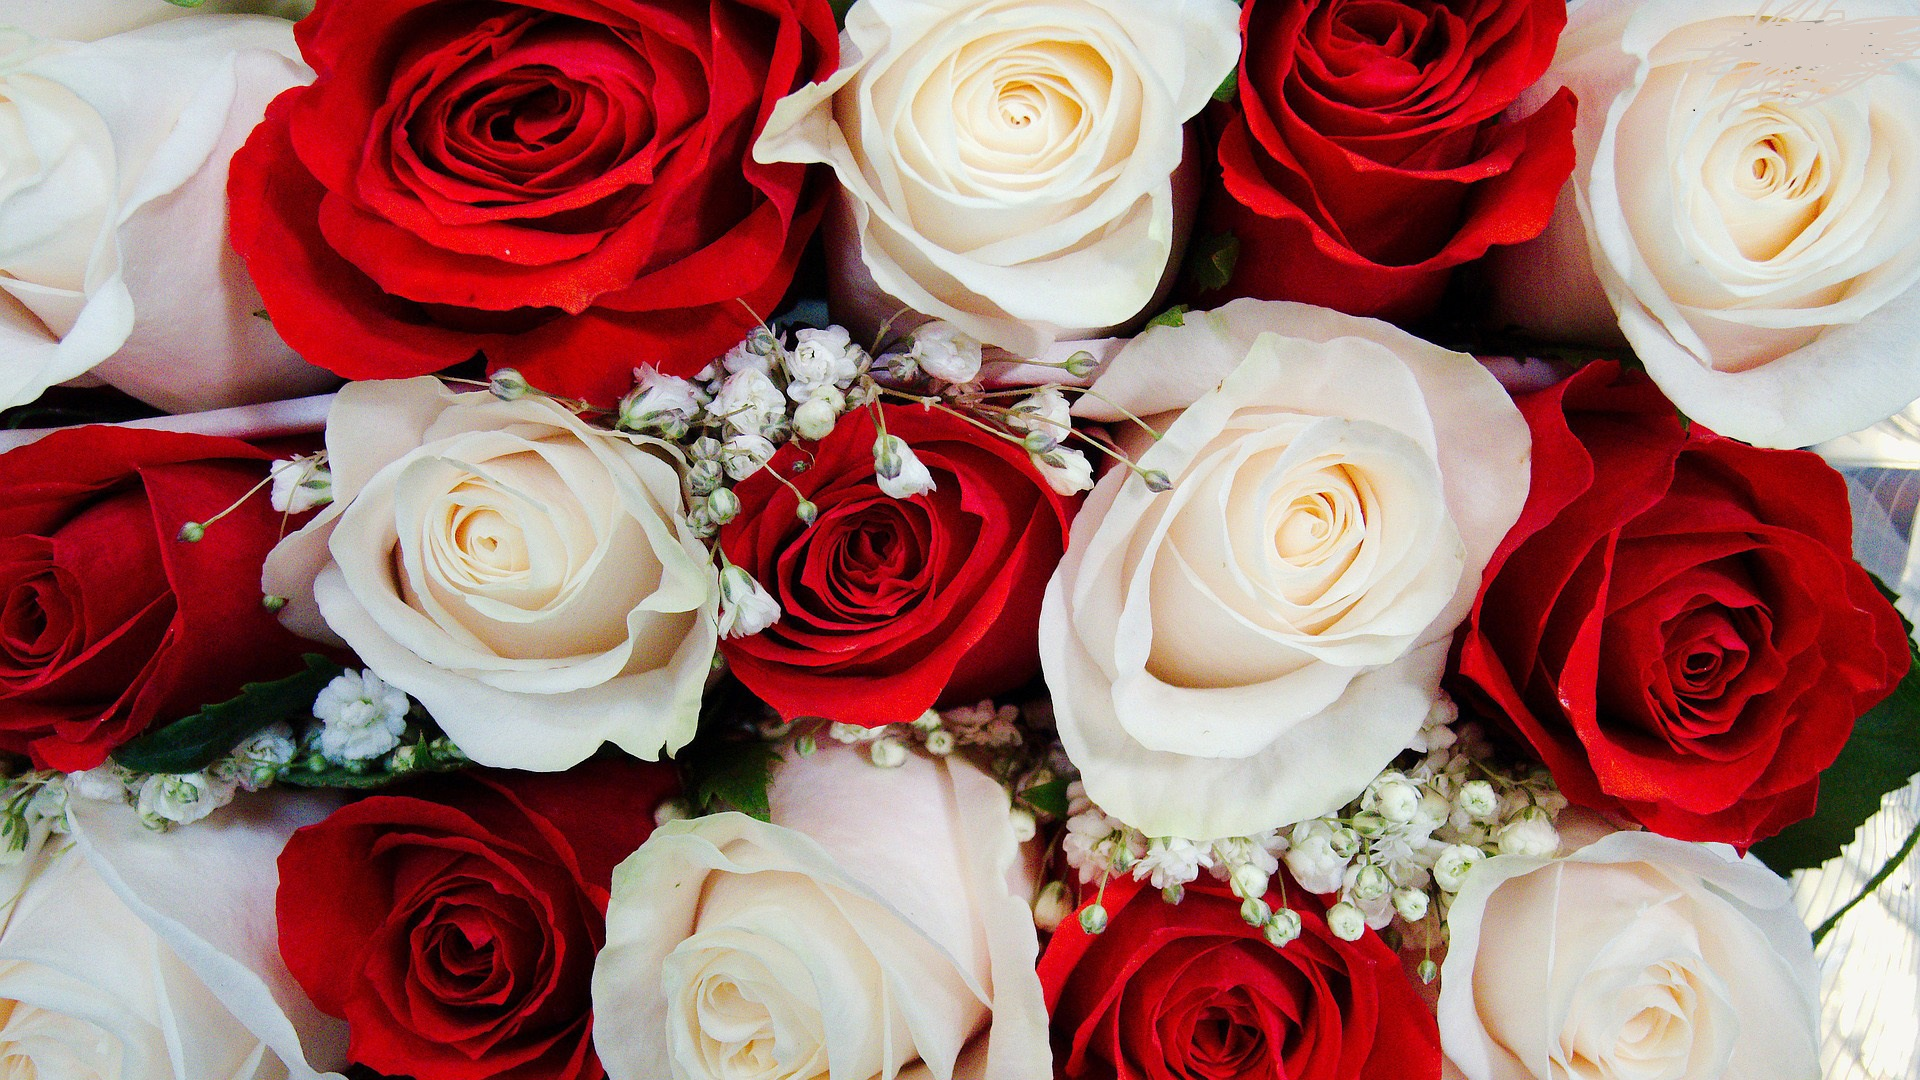 Knumathise Red And White Rose Wallpaper Images